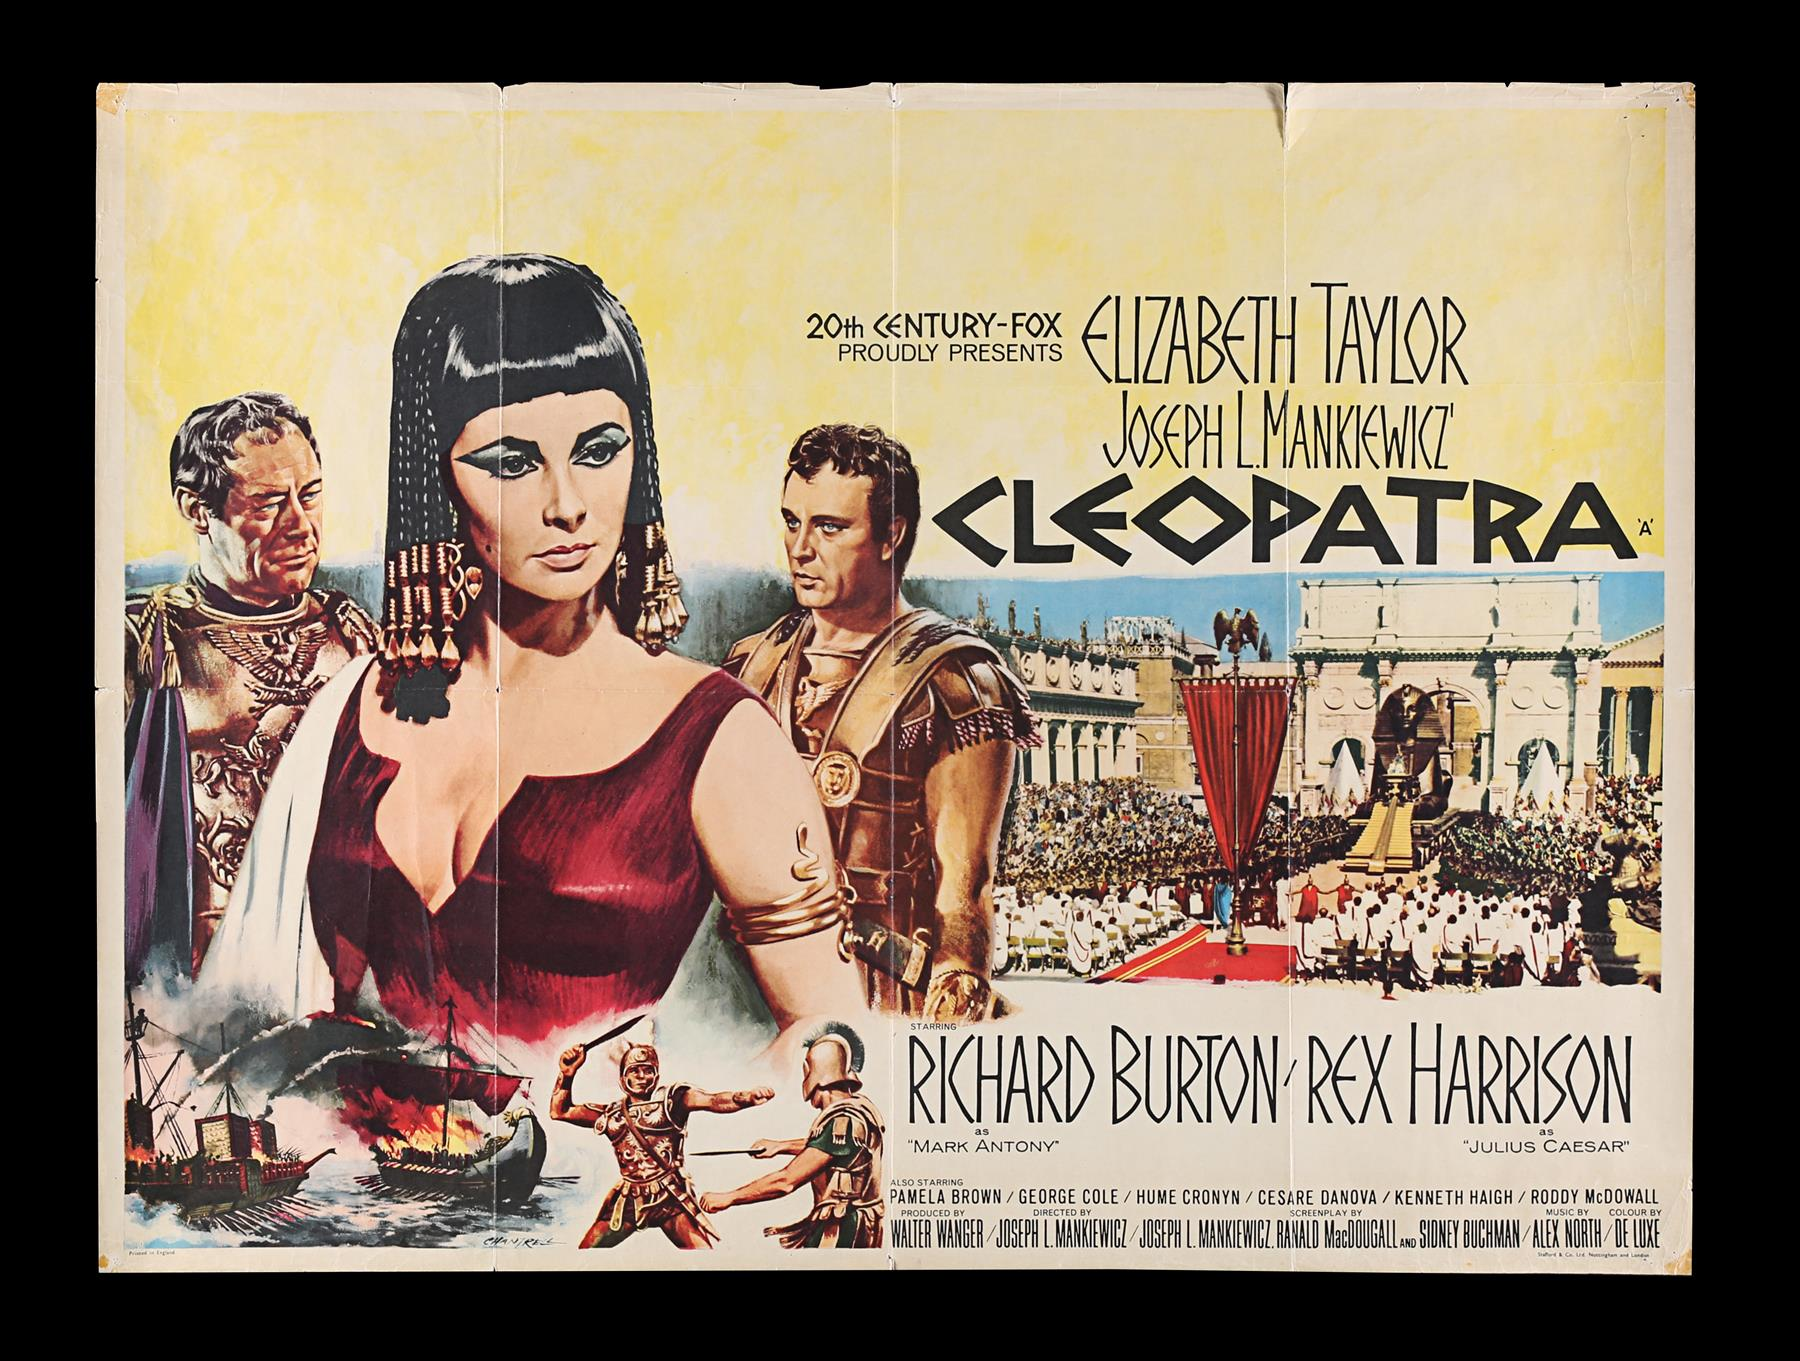 CLEOPATRA (1963) - UK Quad and Exhibitors Campaign Book, 1963 - Image 2 of 7